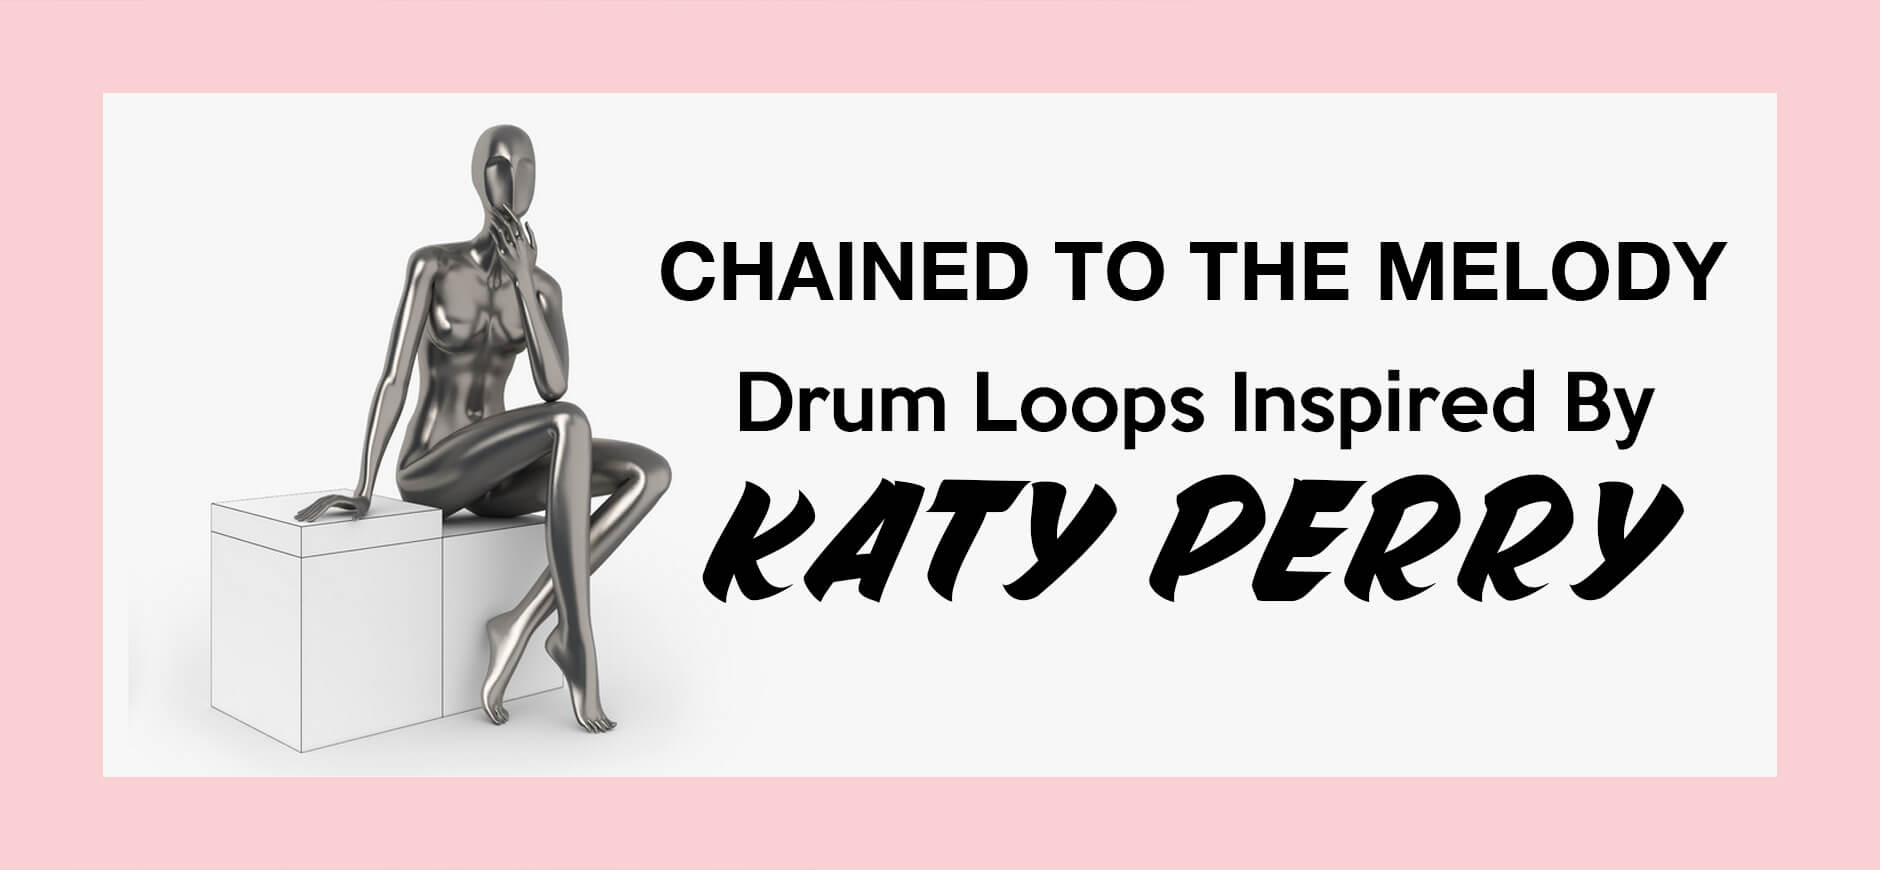 Chained to the Rhythm Drum Loops Inspired by Katy Perry